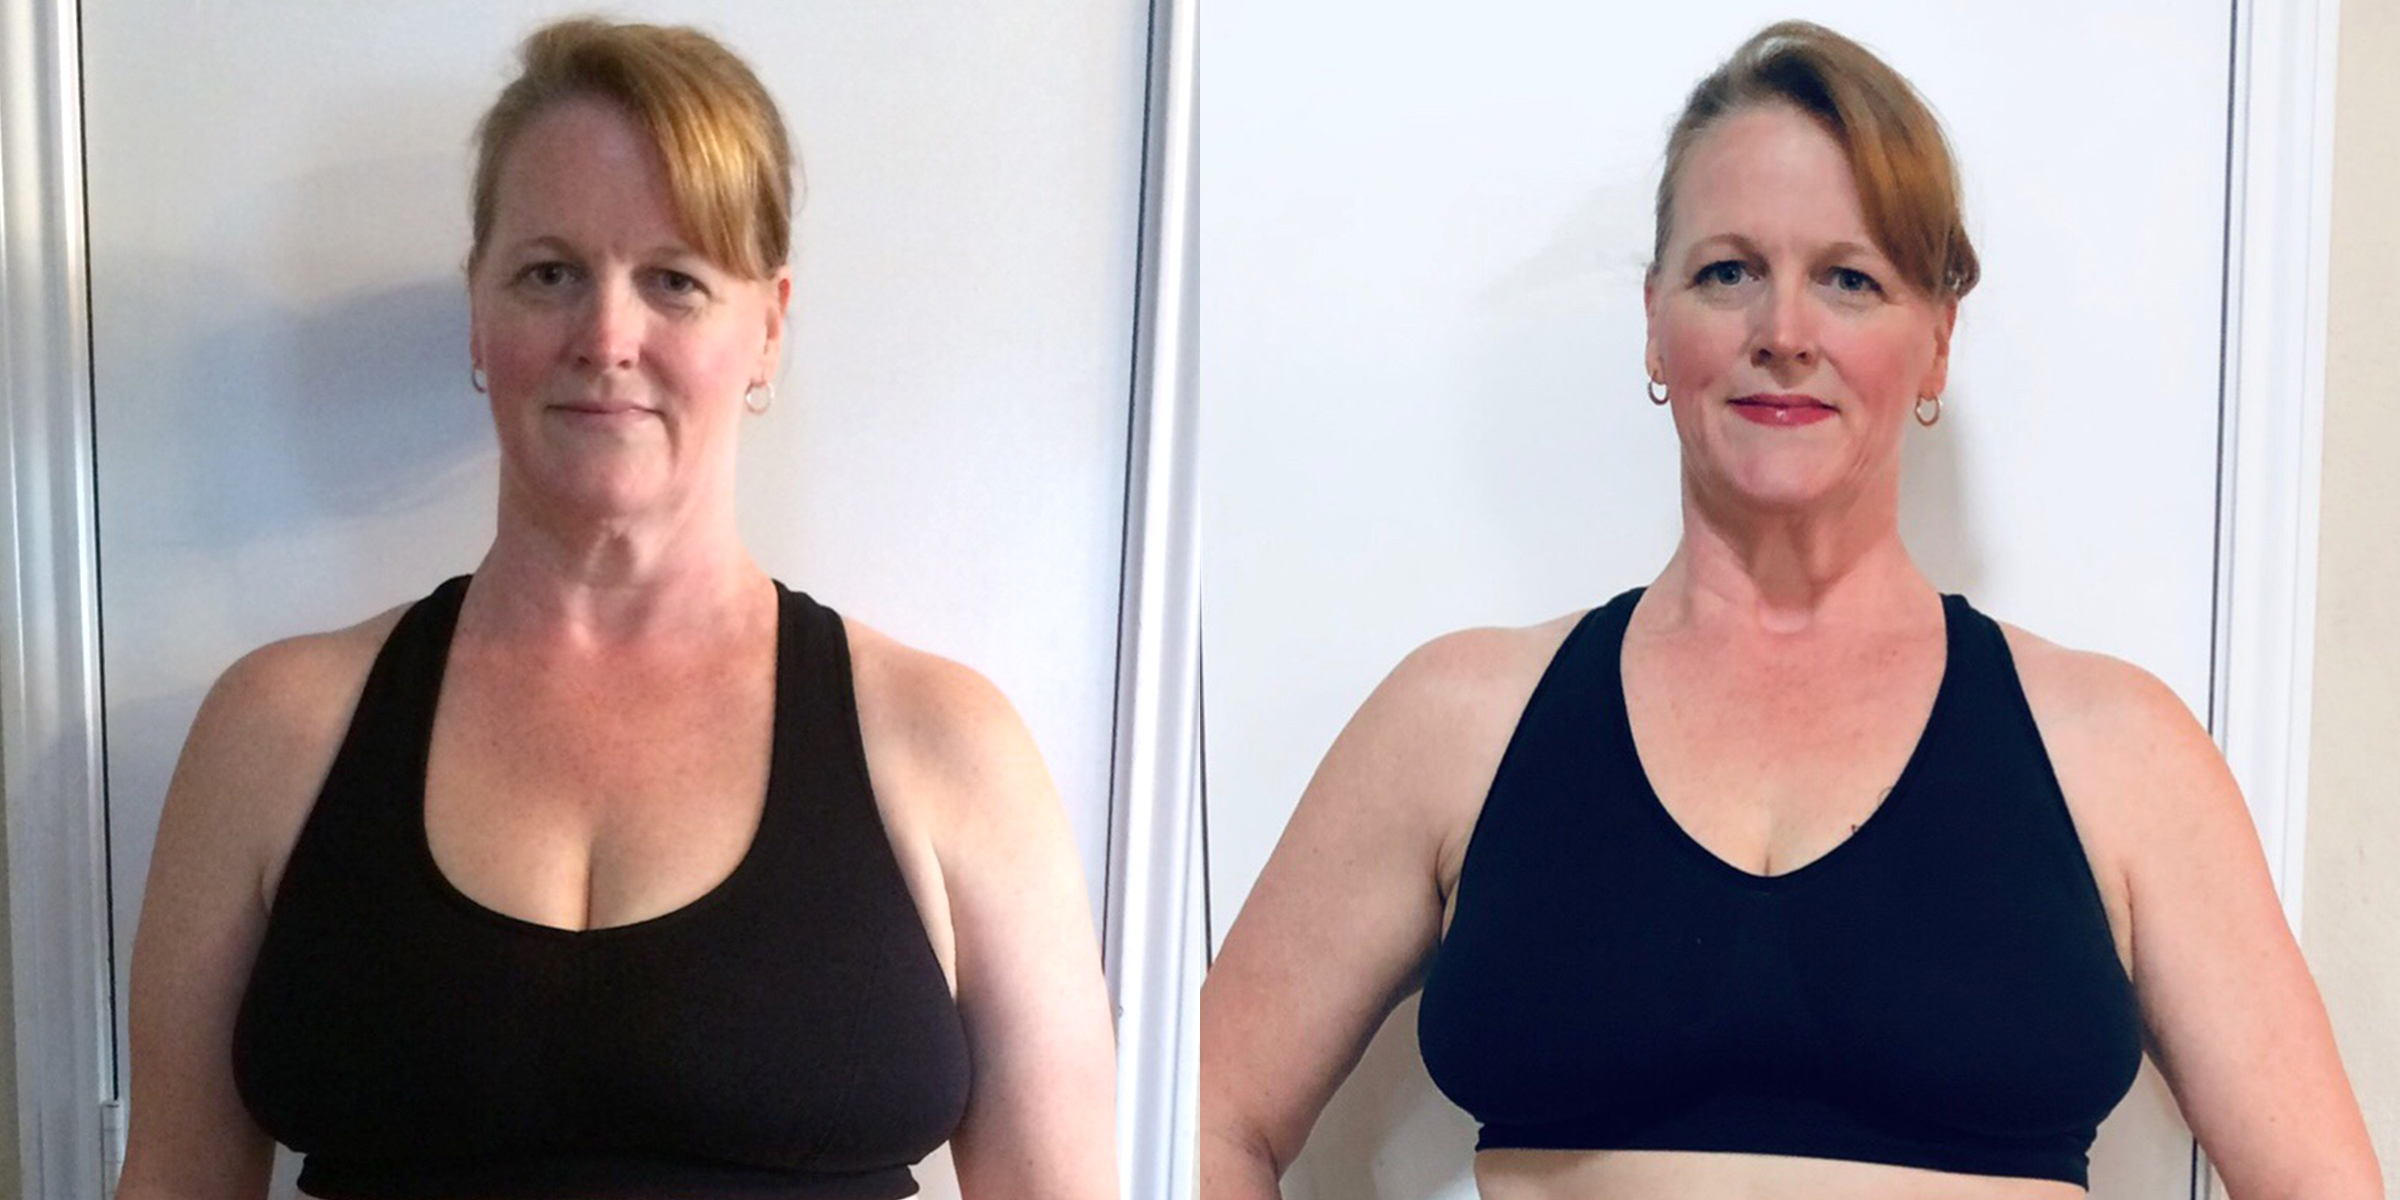 'It's never too late': Woman loses 117 pounds at 48 years old